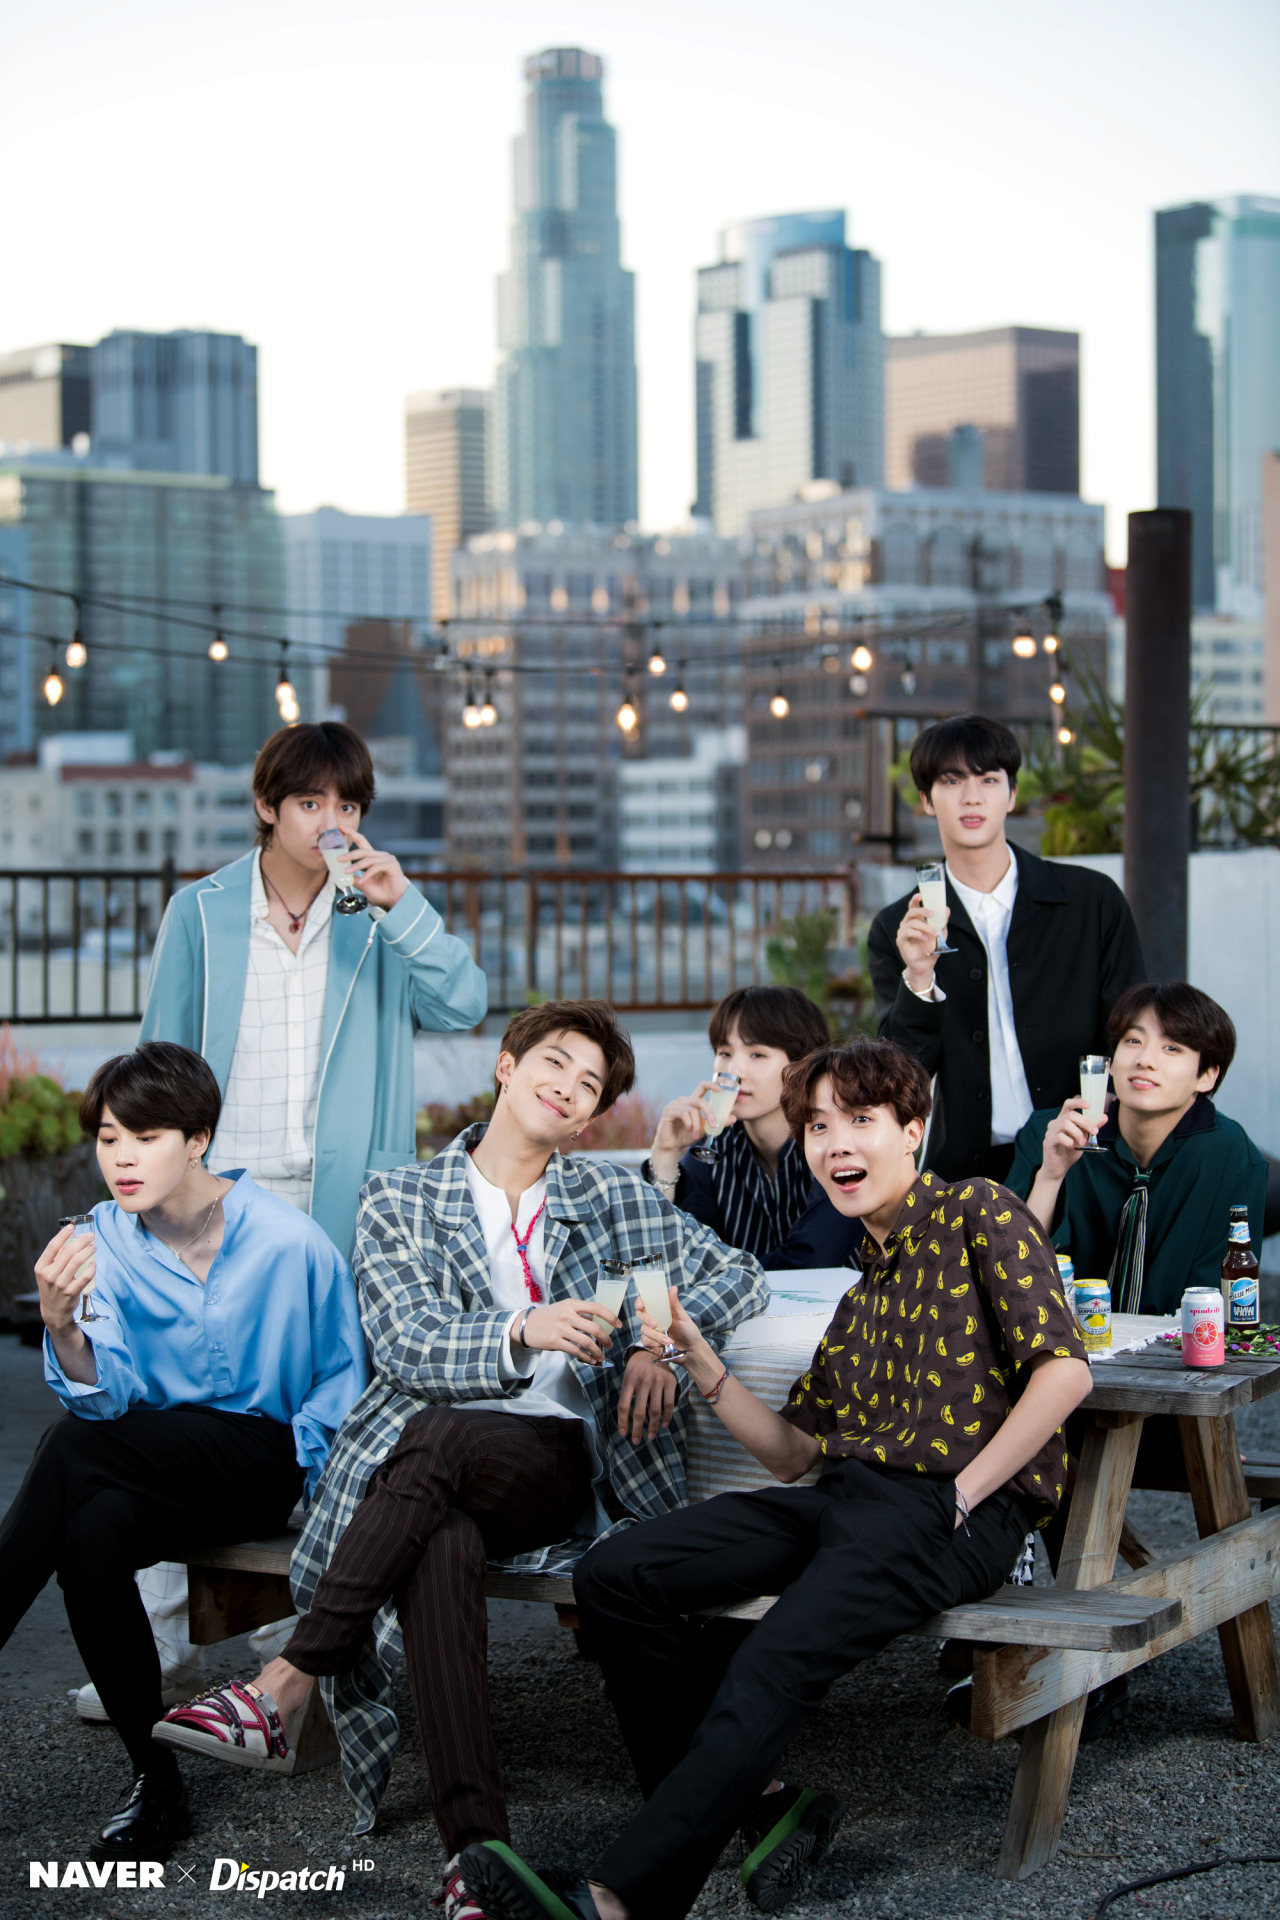 Dispatch Bts